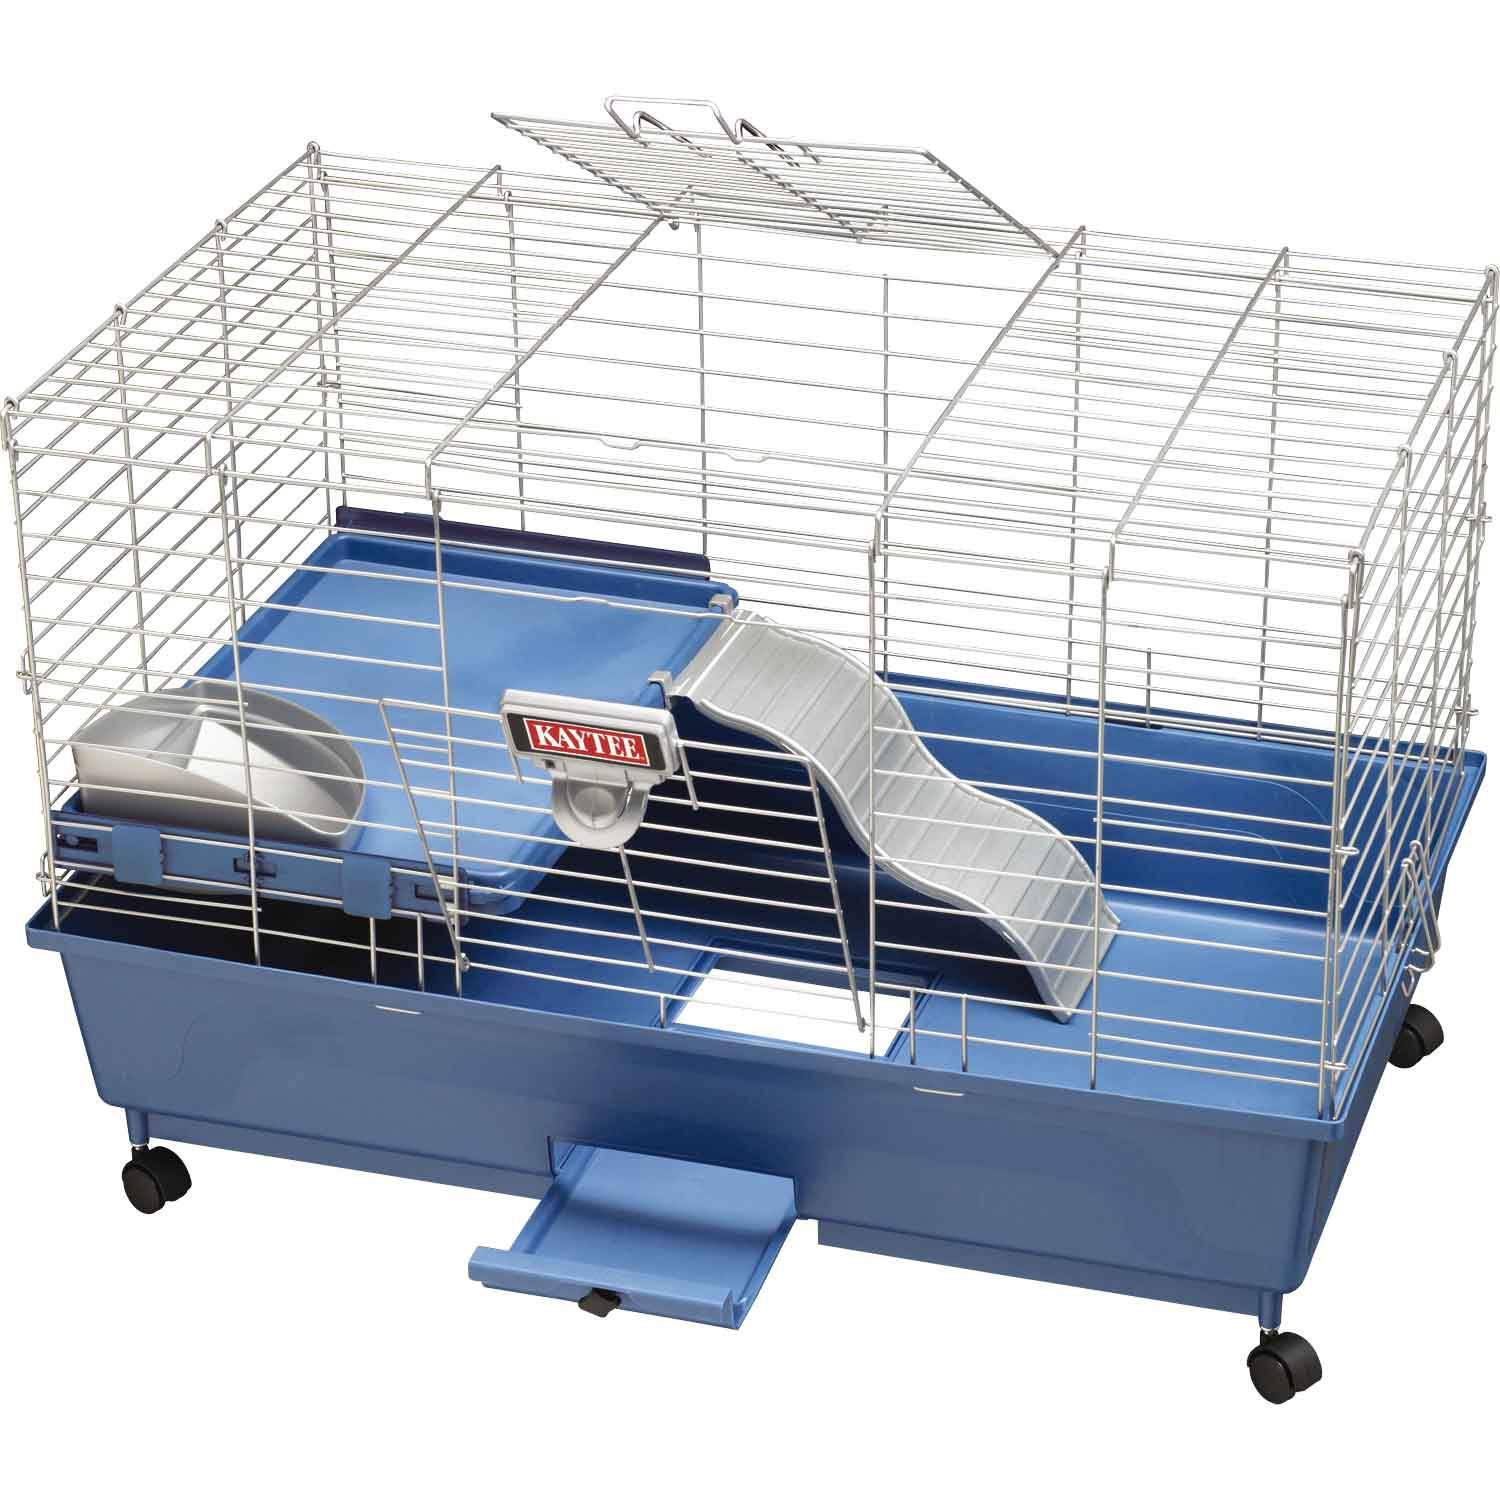 Kaytee guinea pig home ez clean system petco for How to clean guinea pig cages